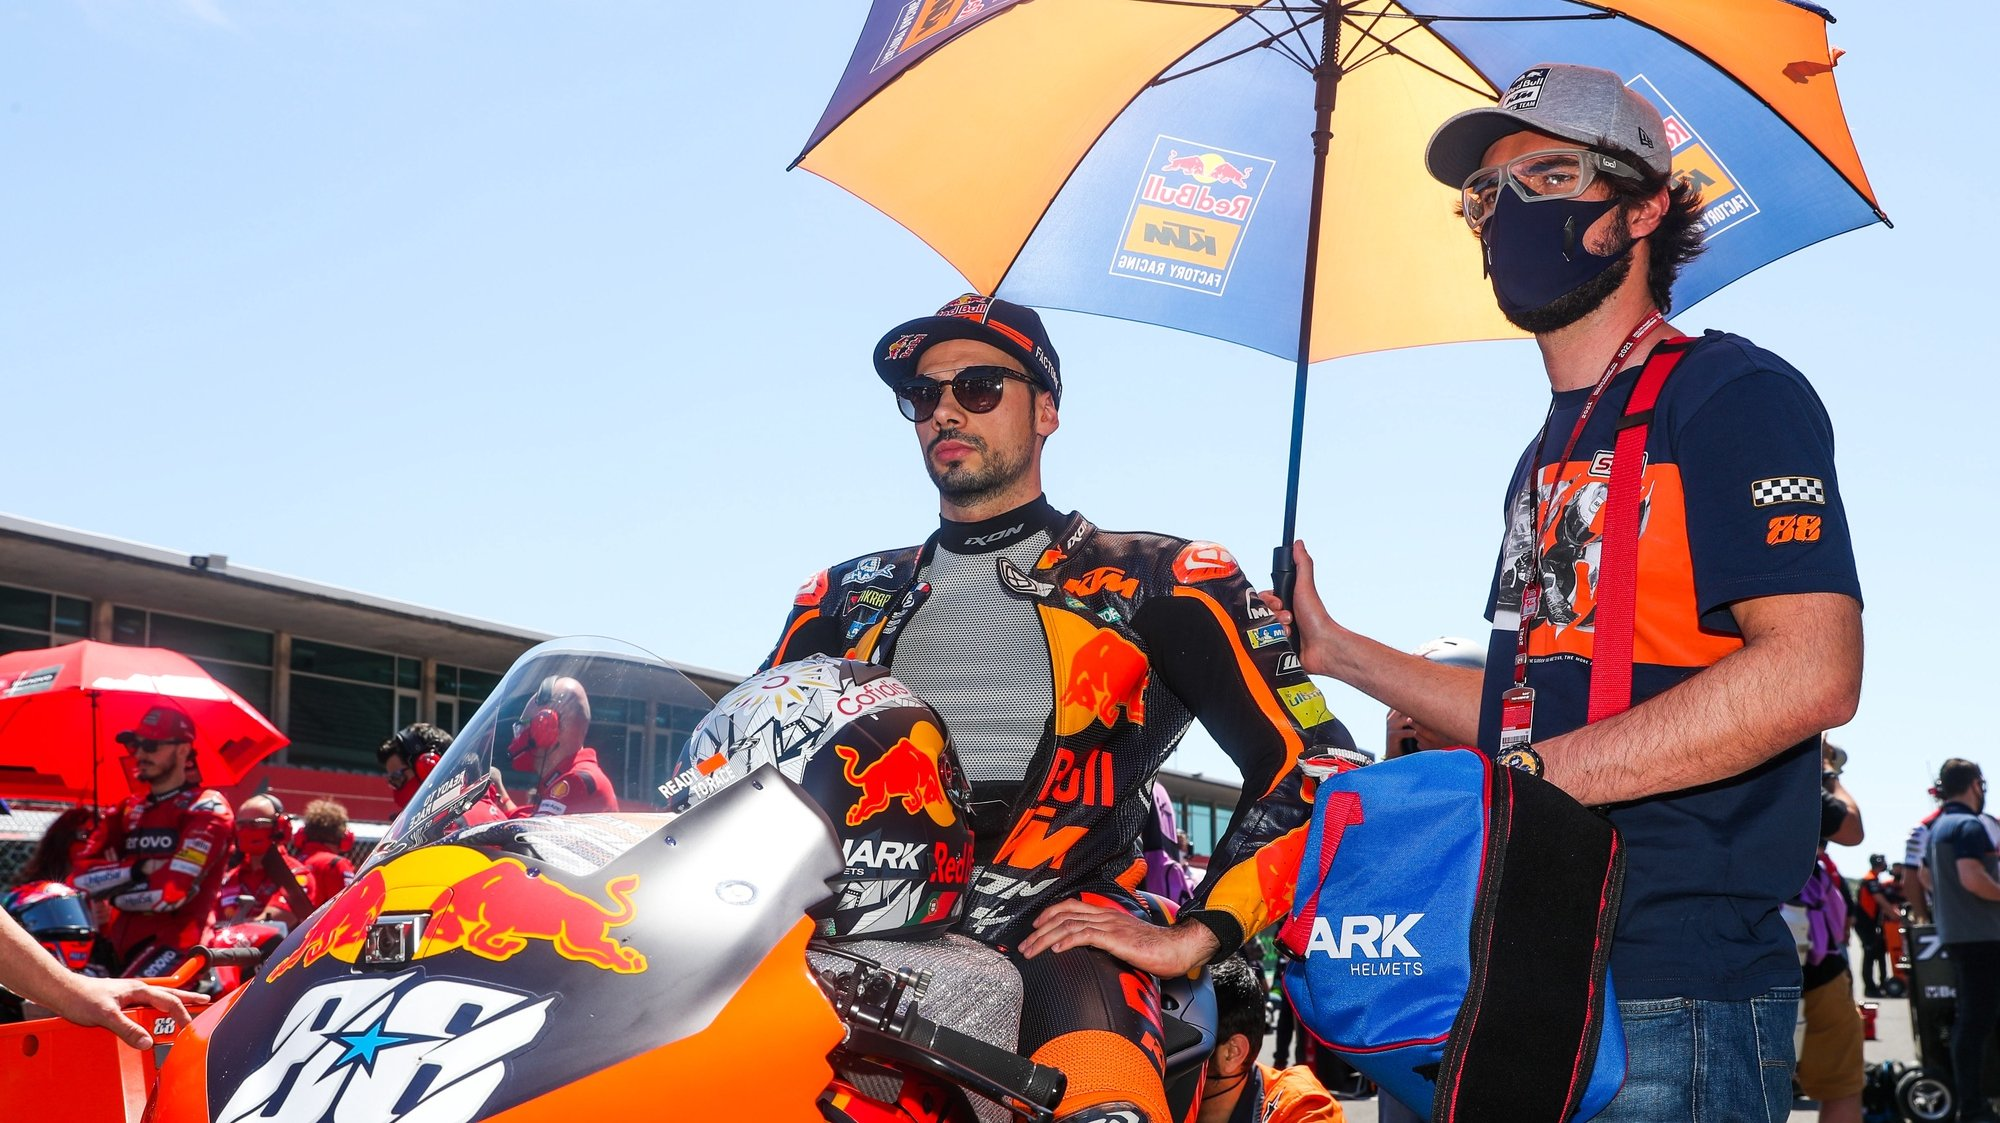 epa09143377 Portuguese rider of Red Bull KTM Factory Racing team, Miguel Oliveira on the grid prior to the MotoGP Motorcycling Grand Prix of Portugal at Algarve International race track in Portimao, southern Portugal, 18 April 2021.  EPA/JOSE SENA GOULAO